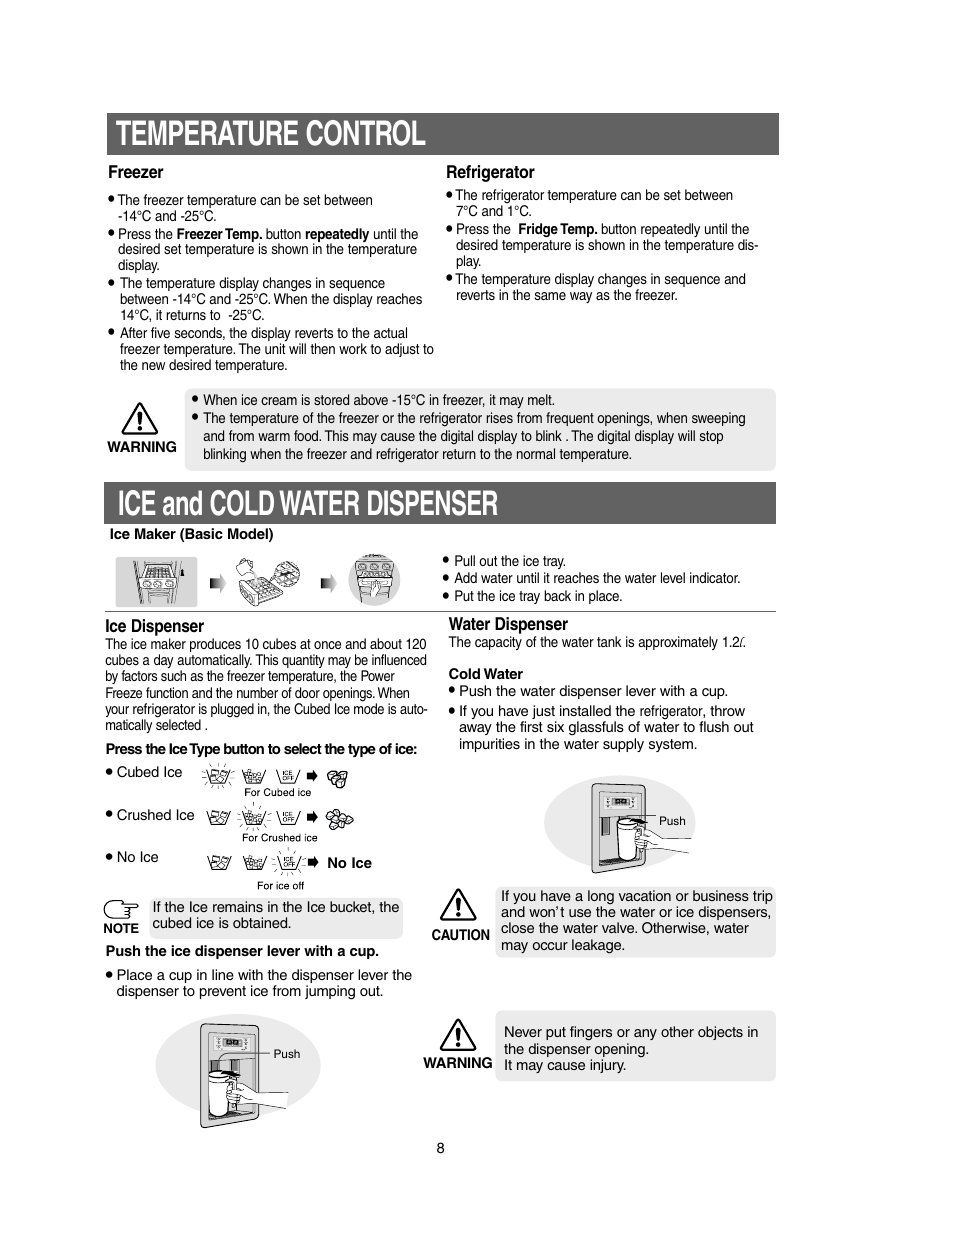 Temperature control, Ice and cold water dispenser | Samsung Model